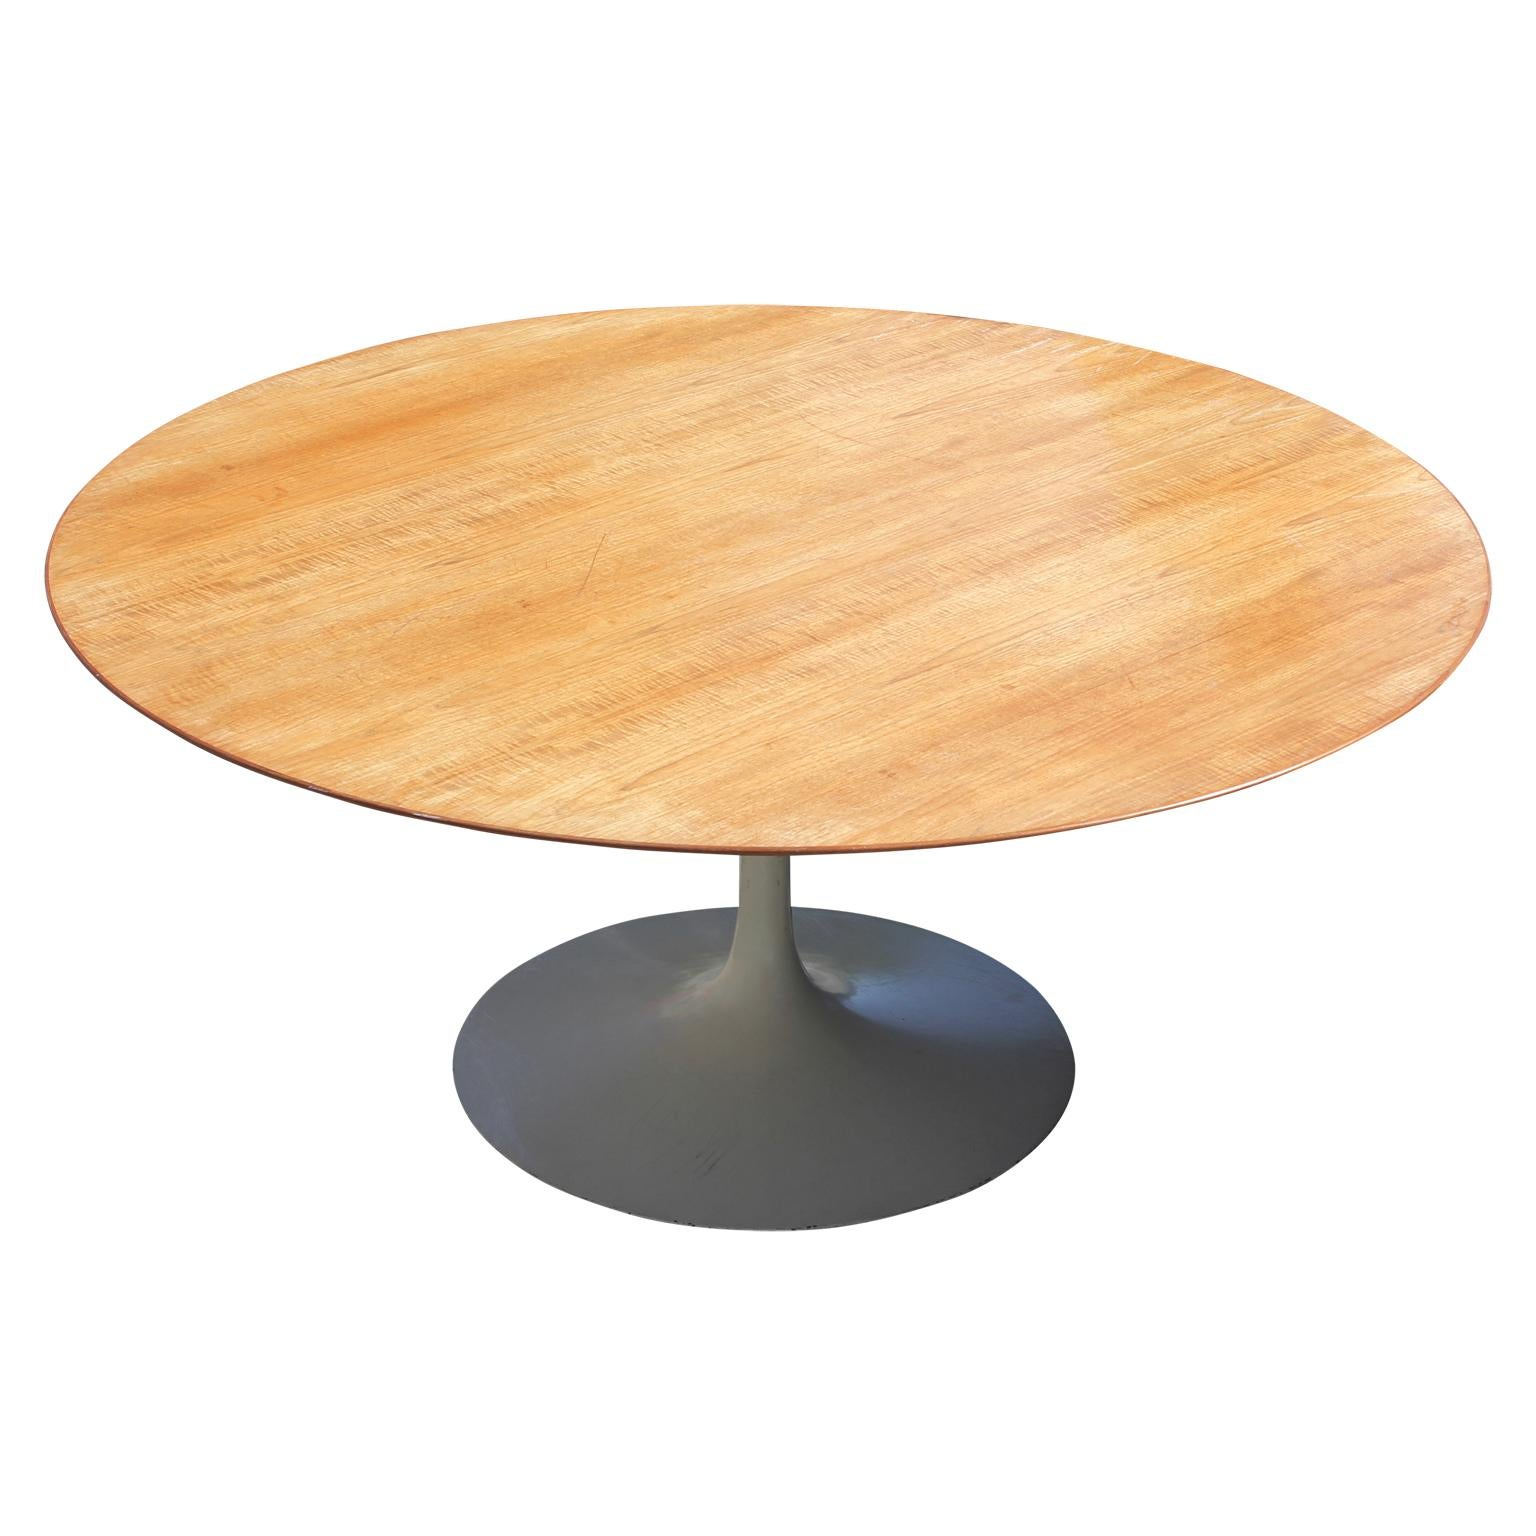 Beau Rare Midcentury Round Tulip Table By Knoll And Saarinen. The Wooden  Tabletop Has A 68